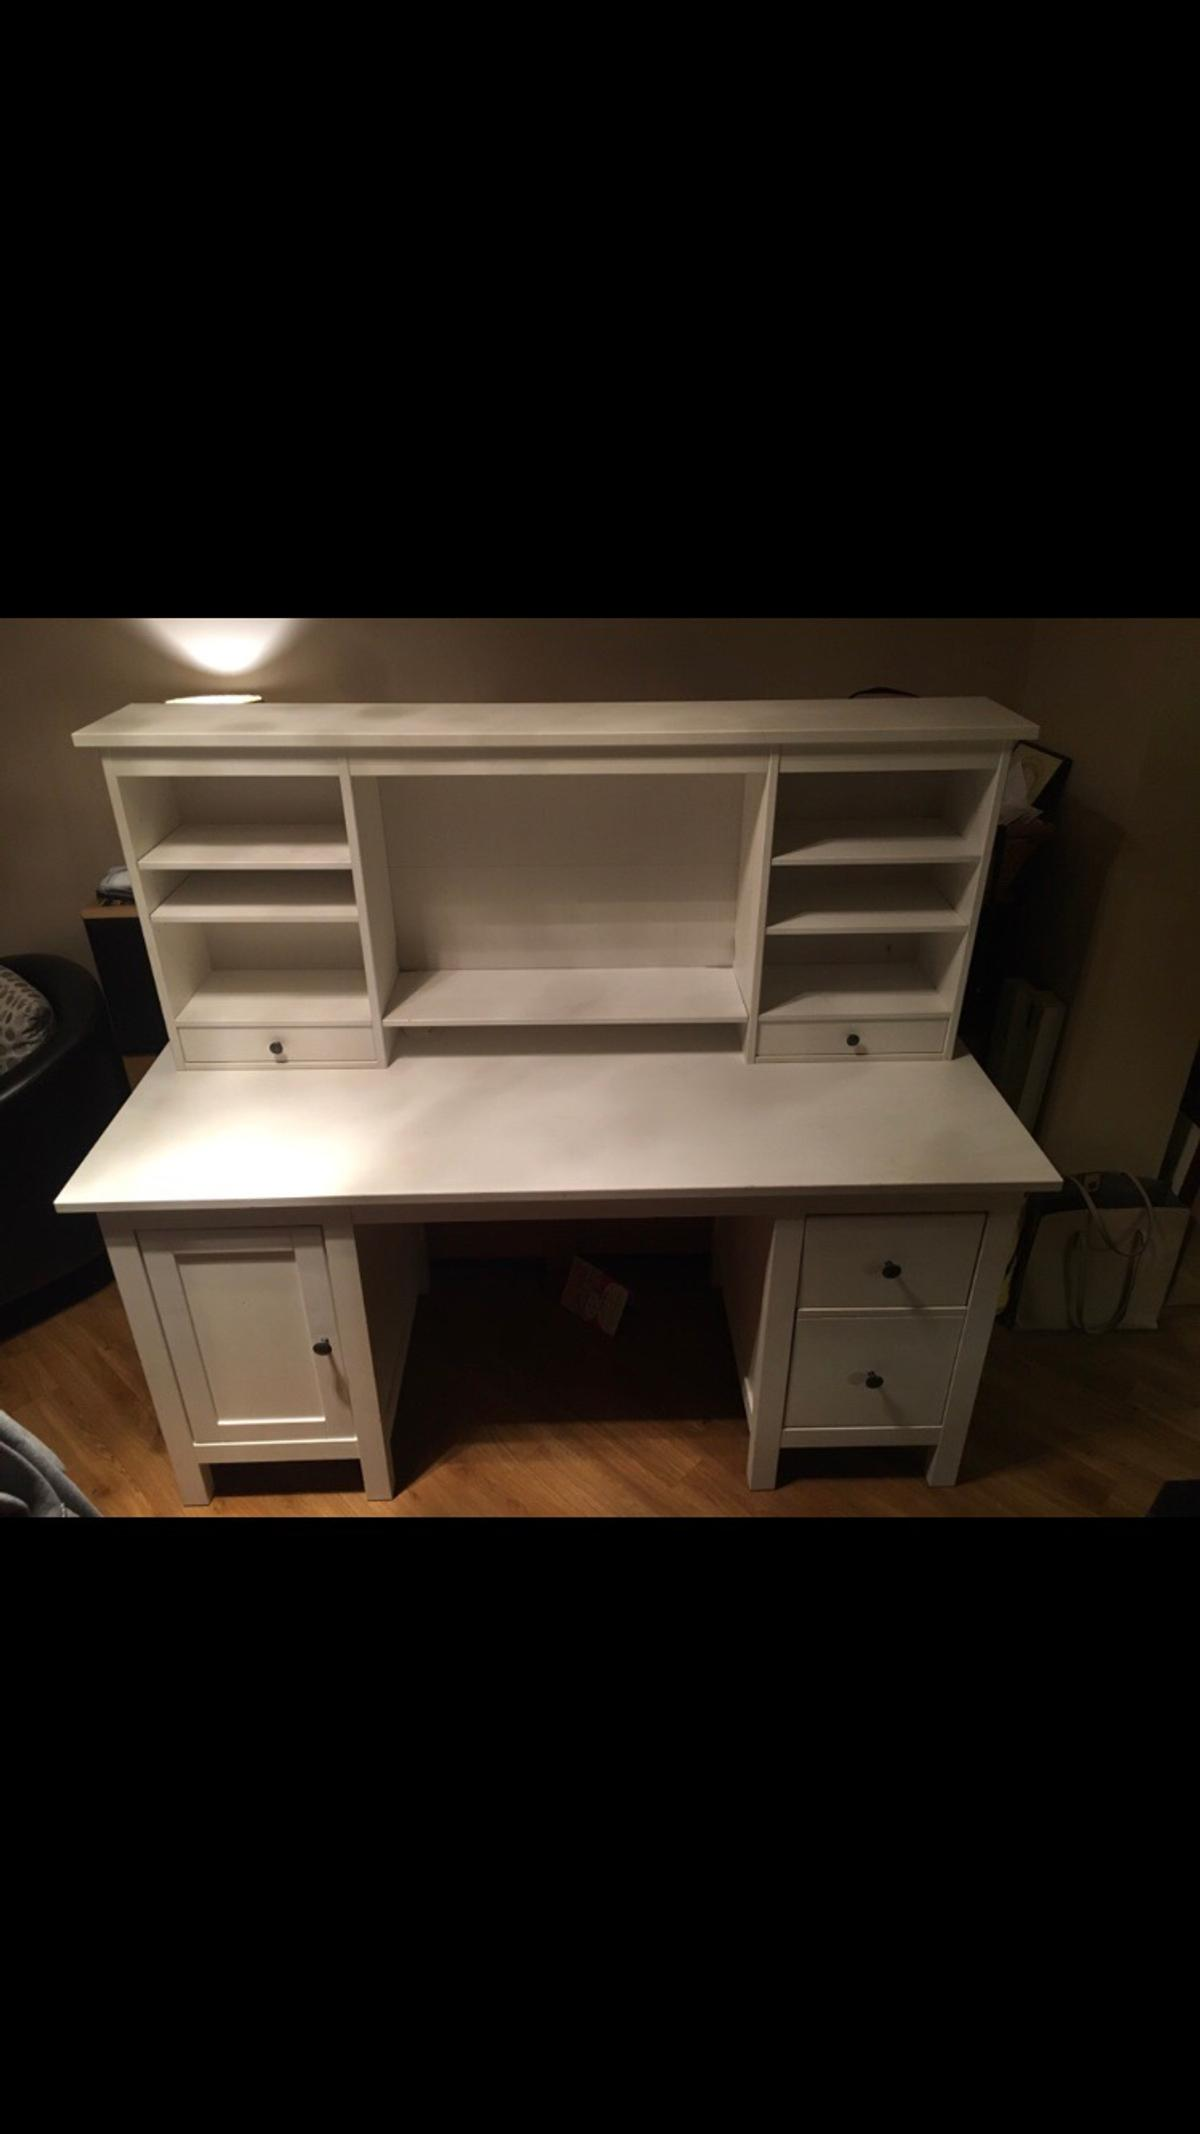 Hemnes Desk From Ikea With Topper